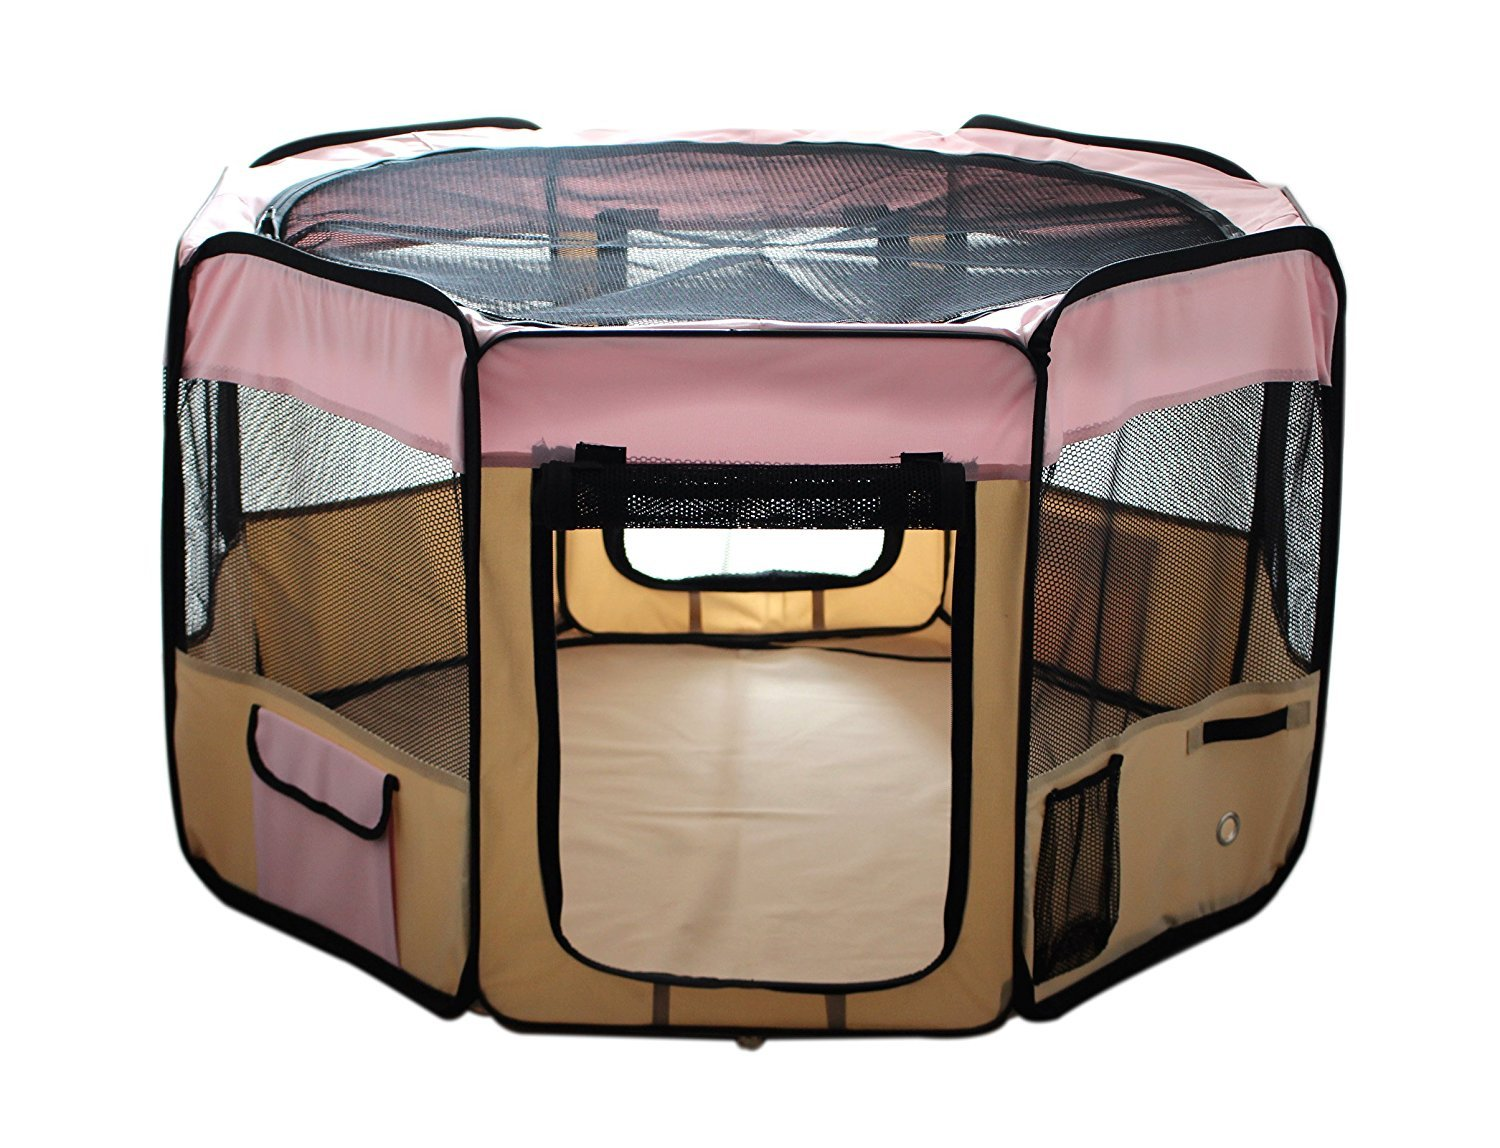 ESK Collection Pink Pet Tent Exercise Pen Playpen Dog Crate XS